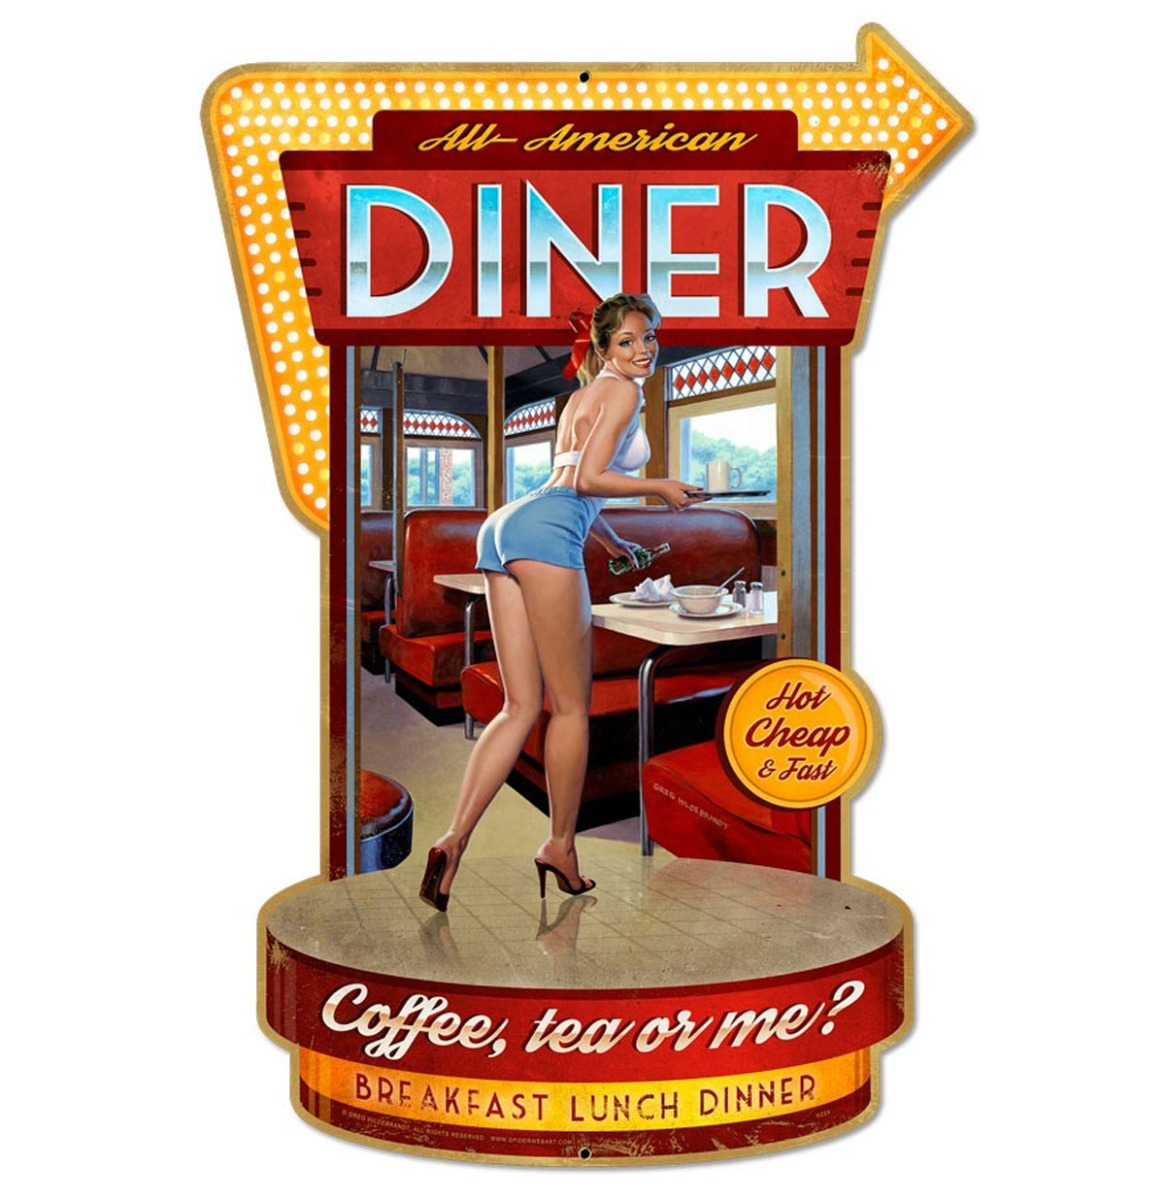 All American Diner Pin Up Zwaar Metalen Bord 45 x 30 cm